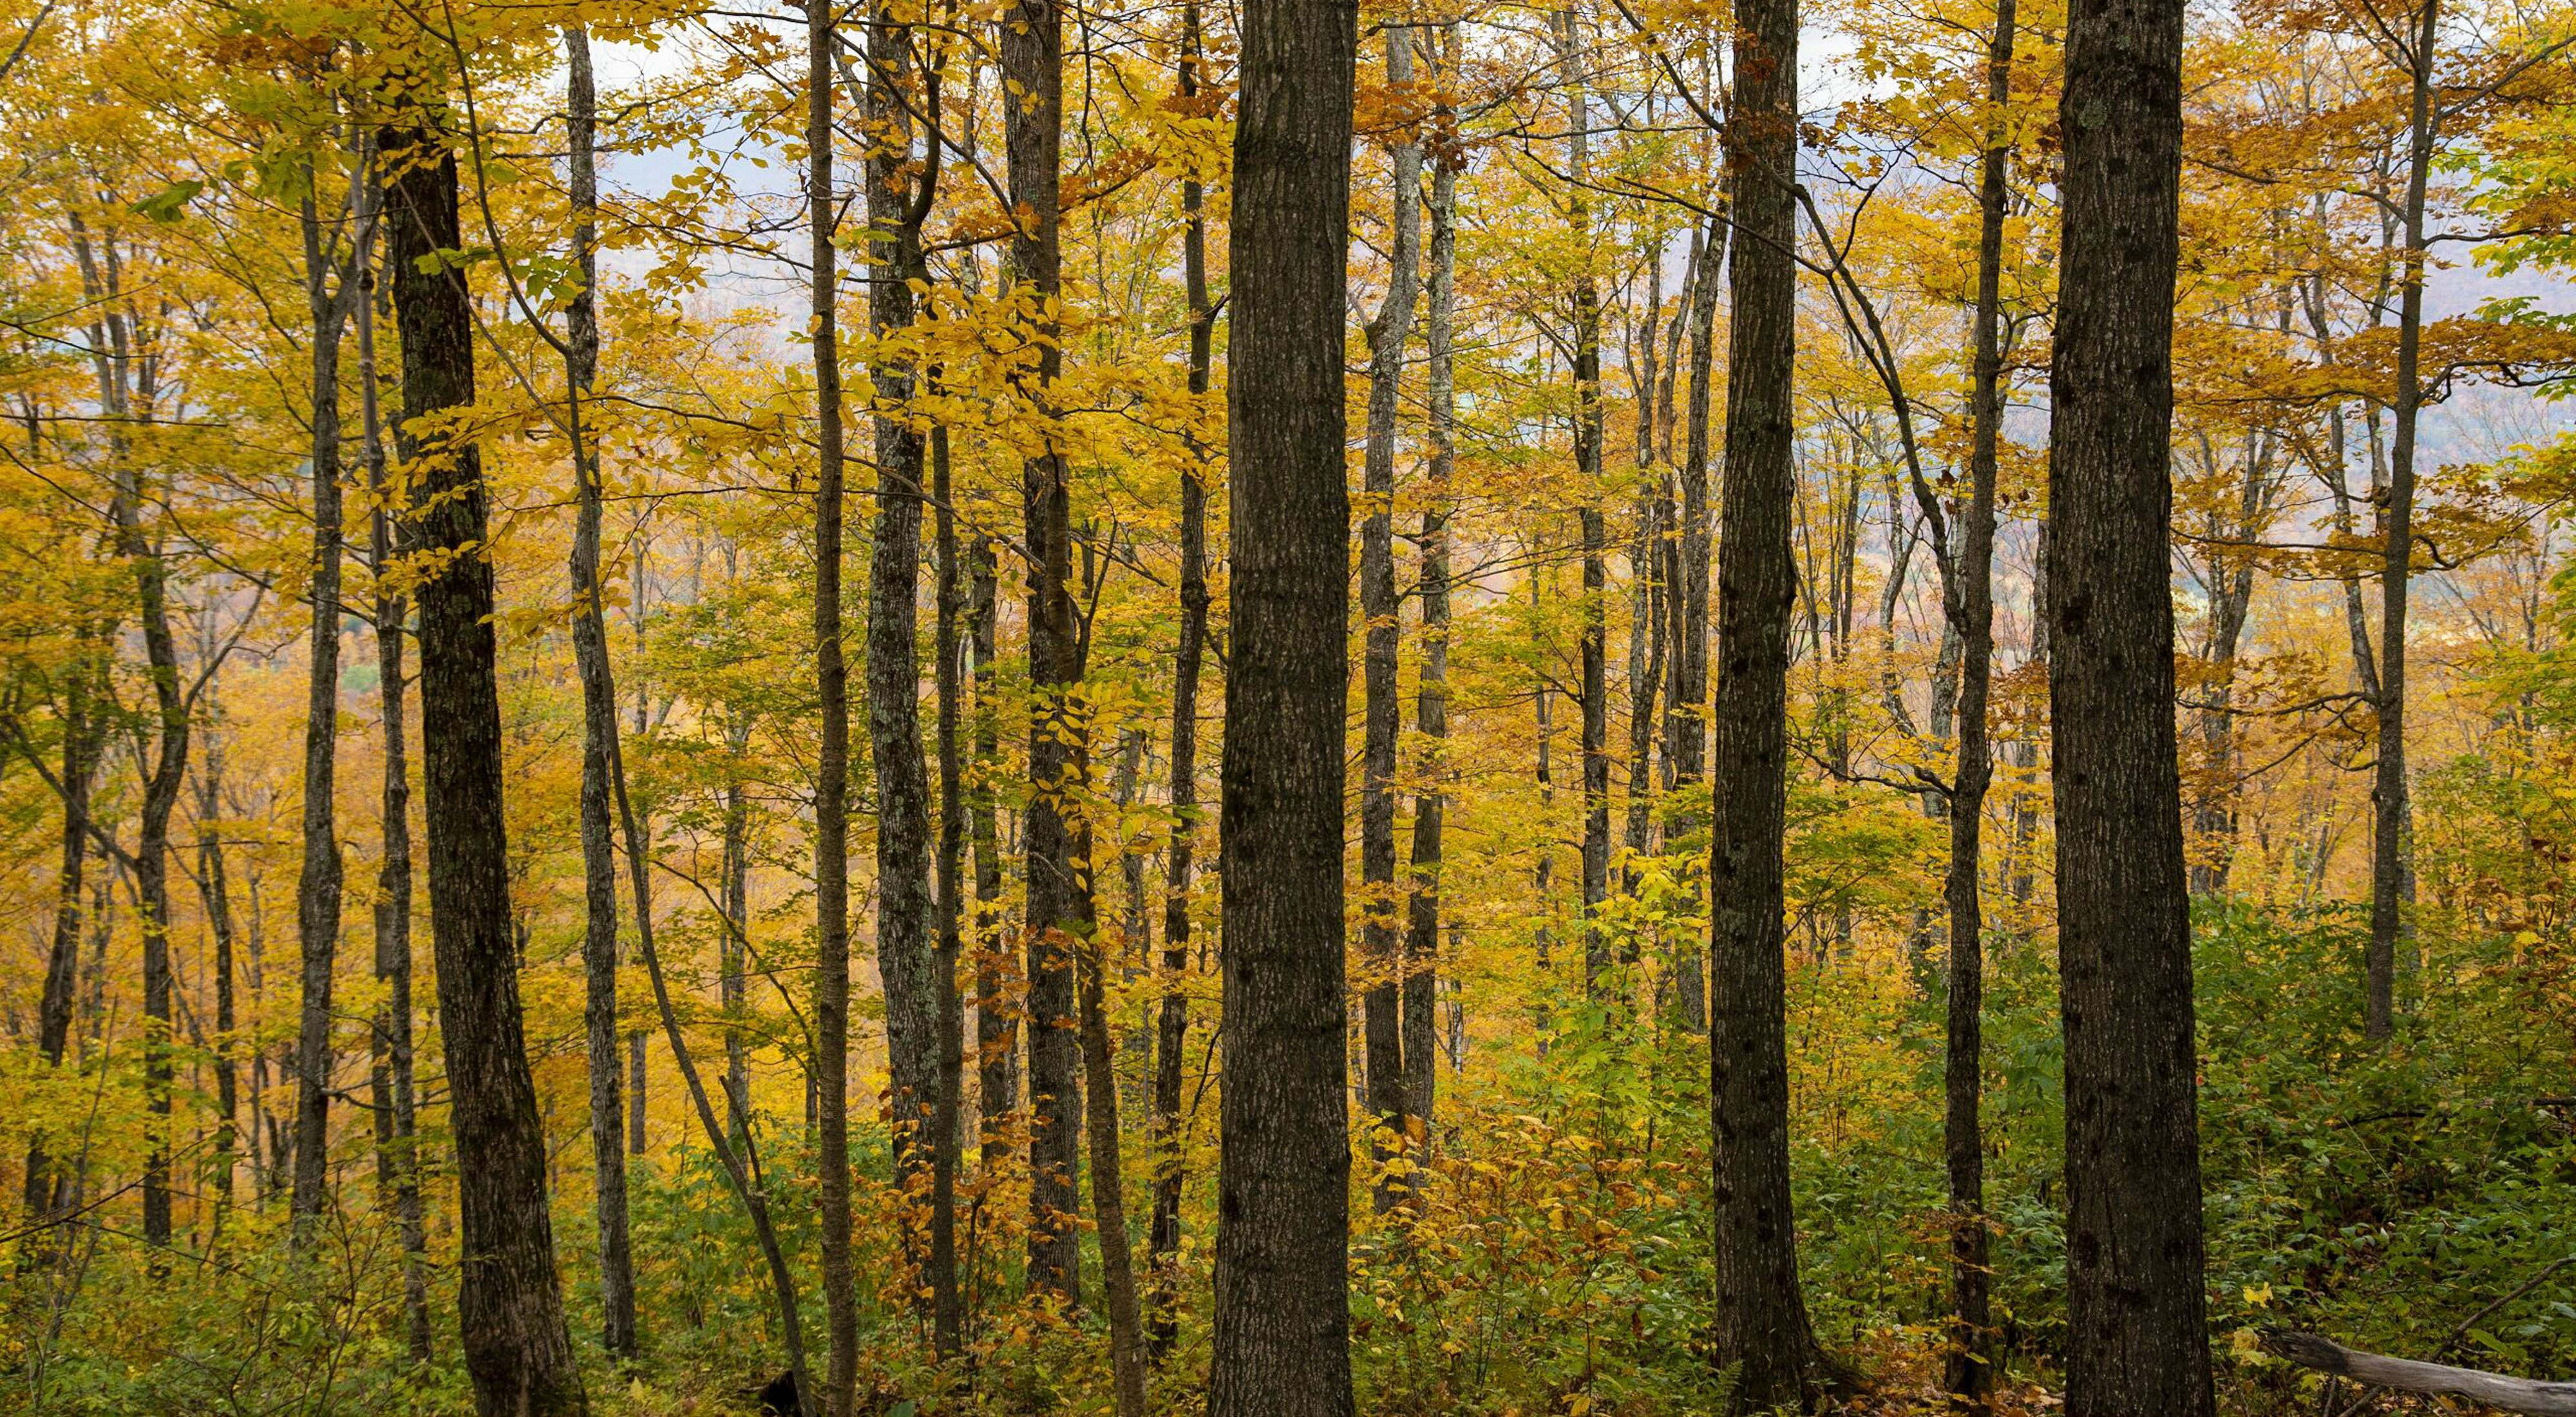 A forest view of trees changing to gold in the fall